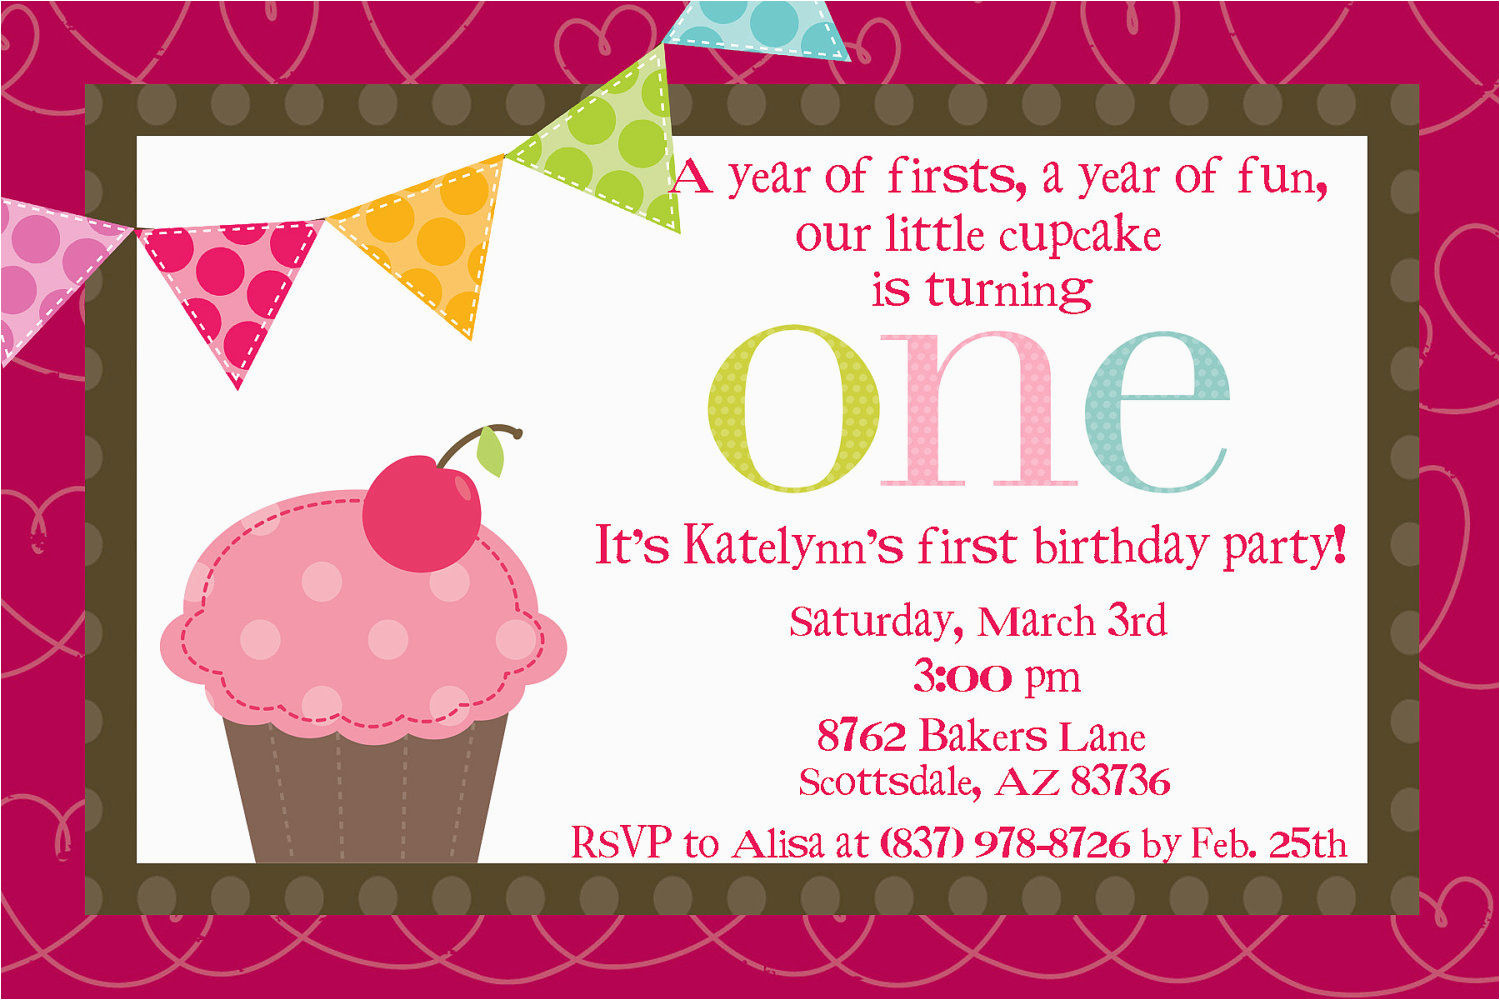 Free E Invitations For Birthdays Email Birthday Templates Egreeting Ecards Jpg 1500x1000